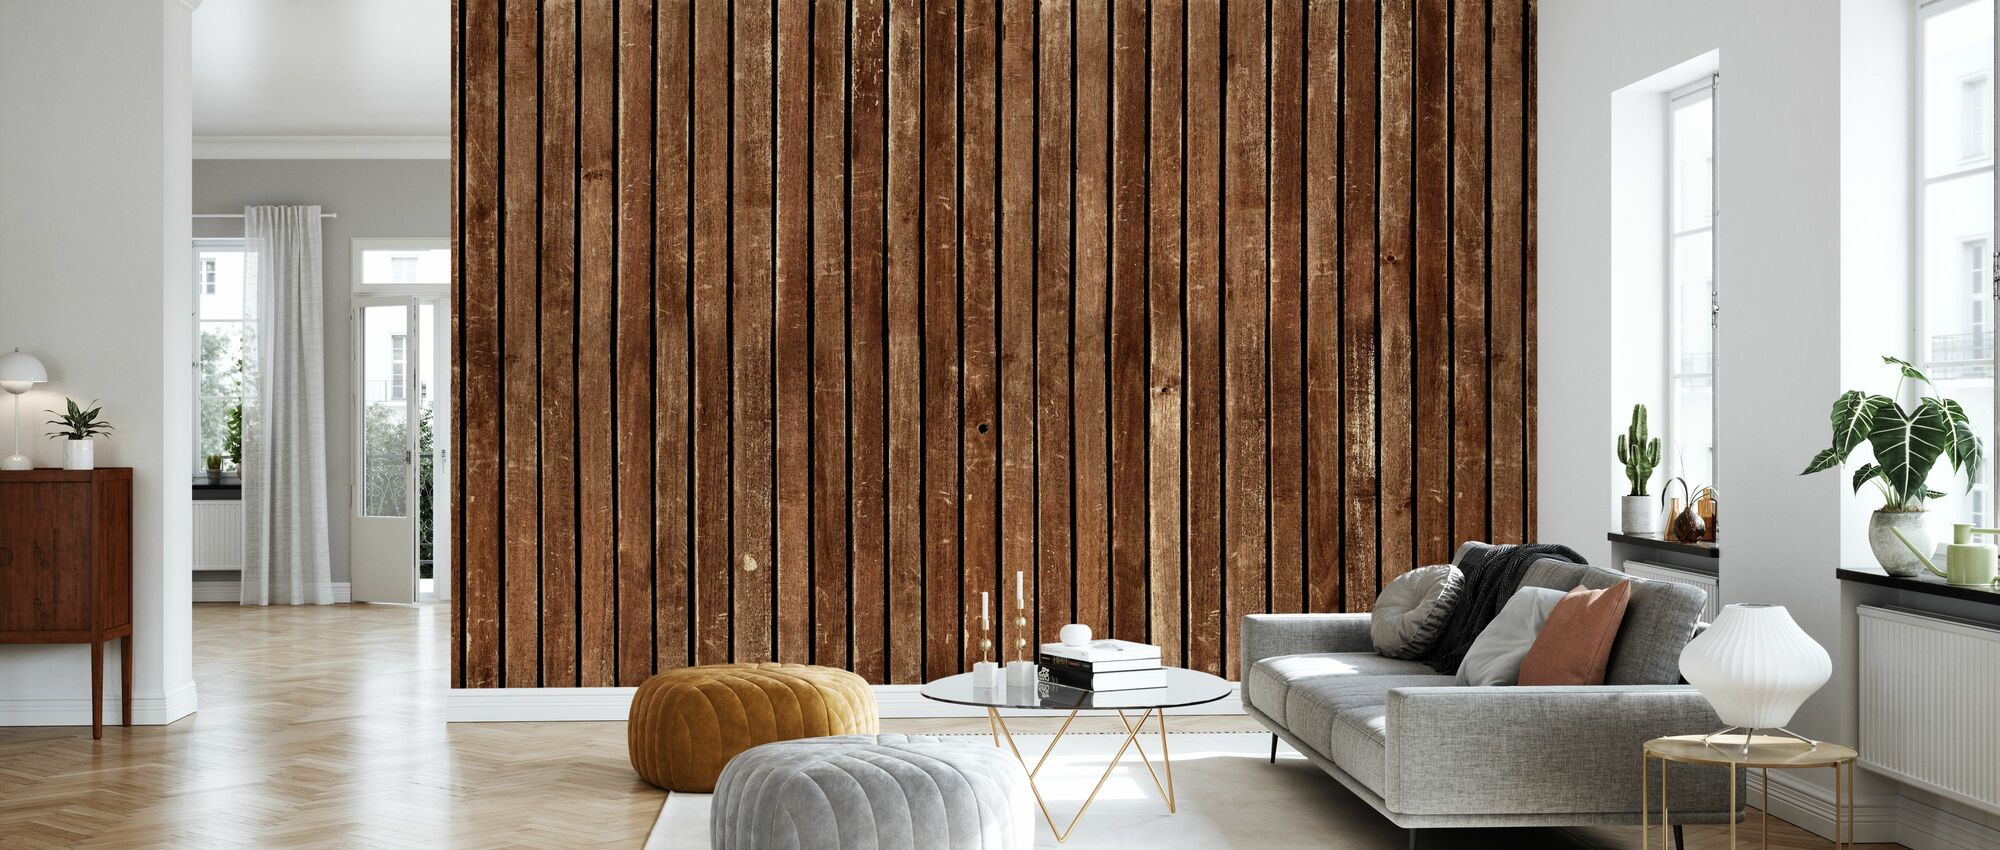 Torn Plank Wall - Wallpaper - Living Room